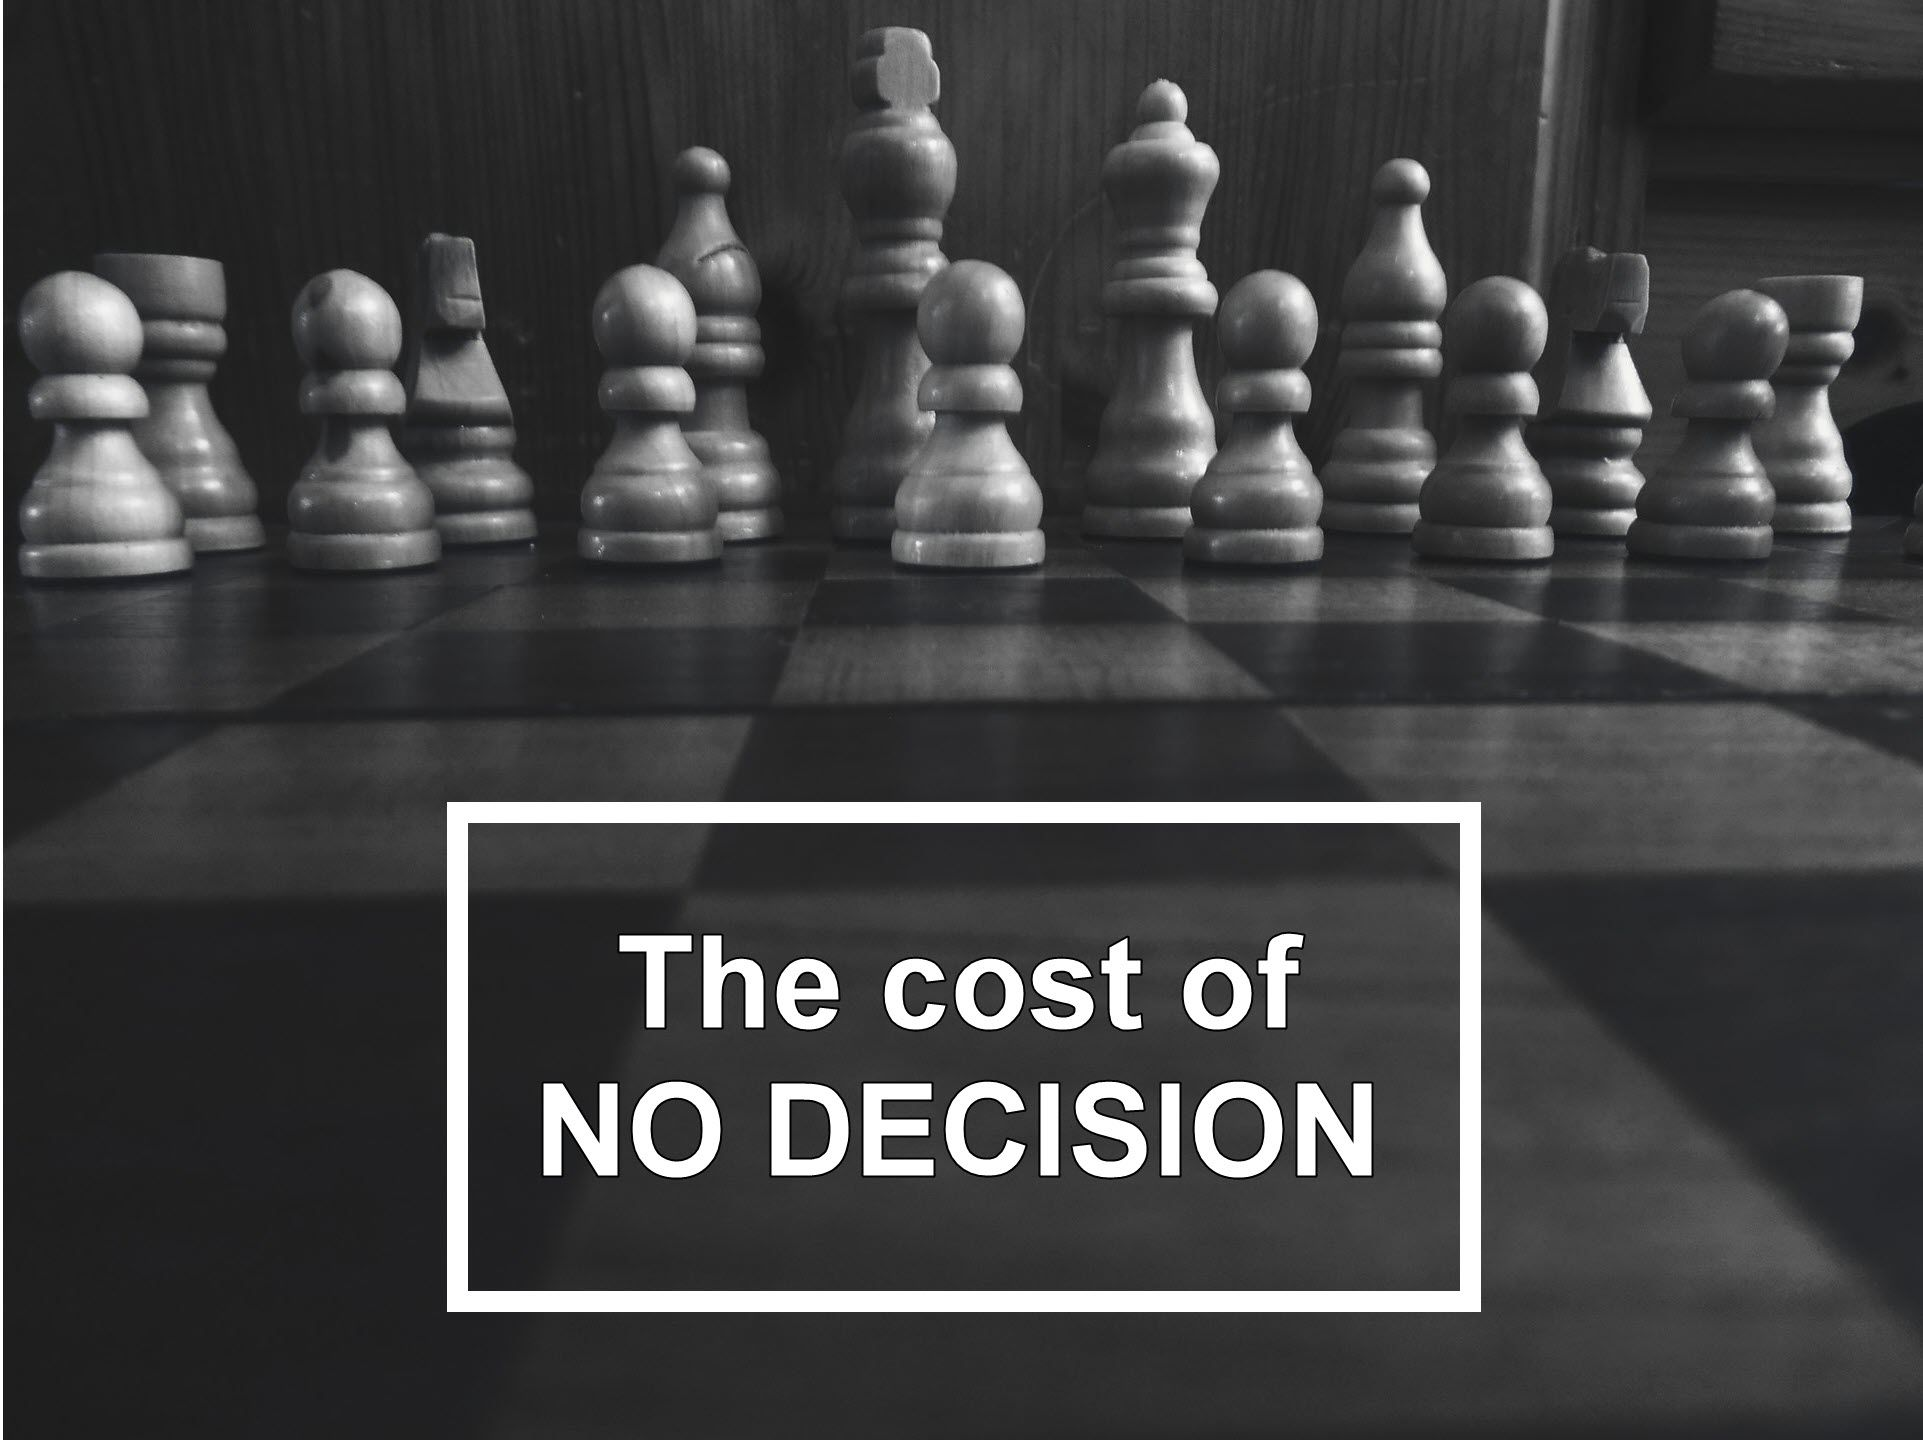 The cost of no decision